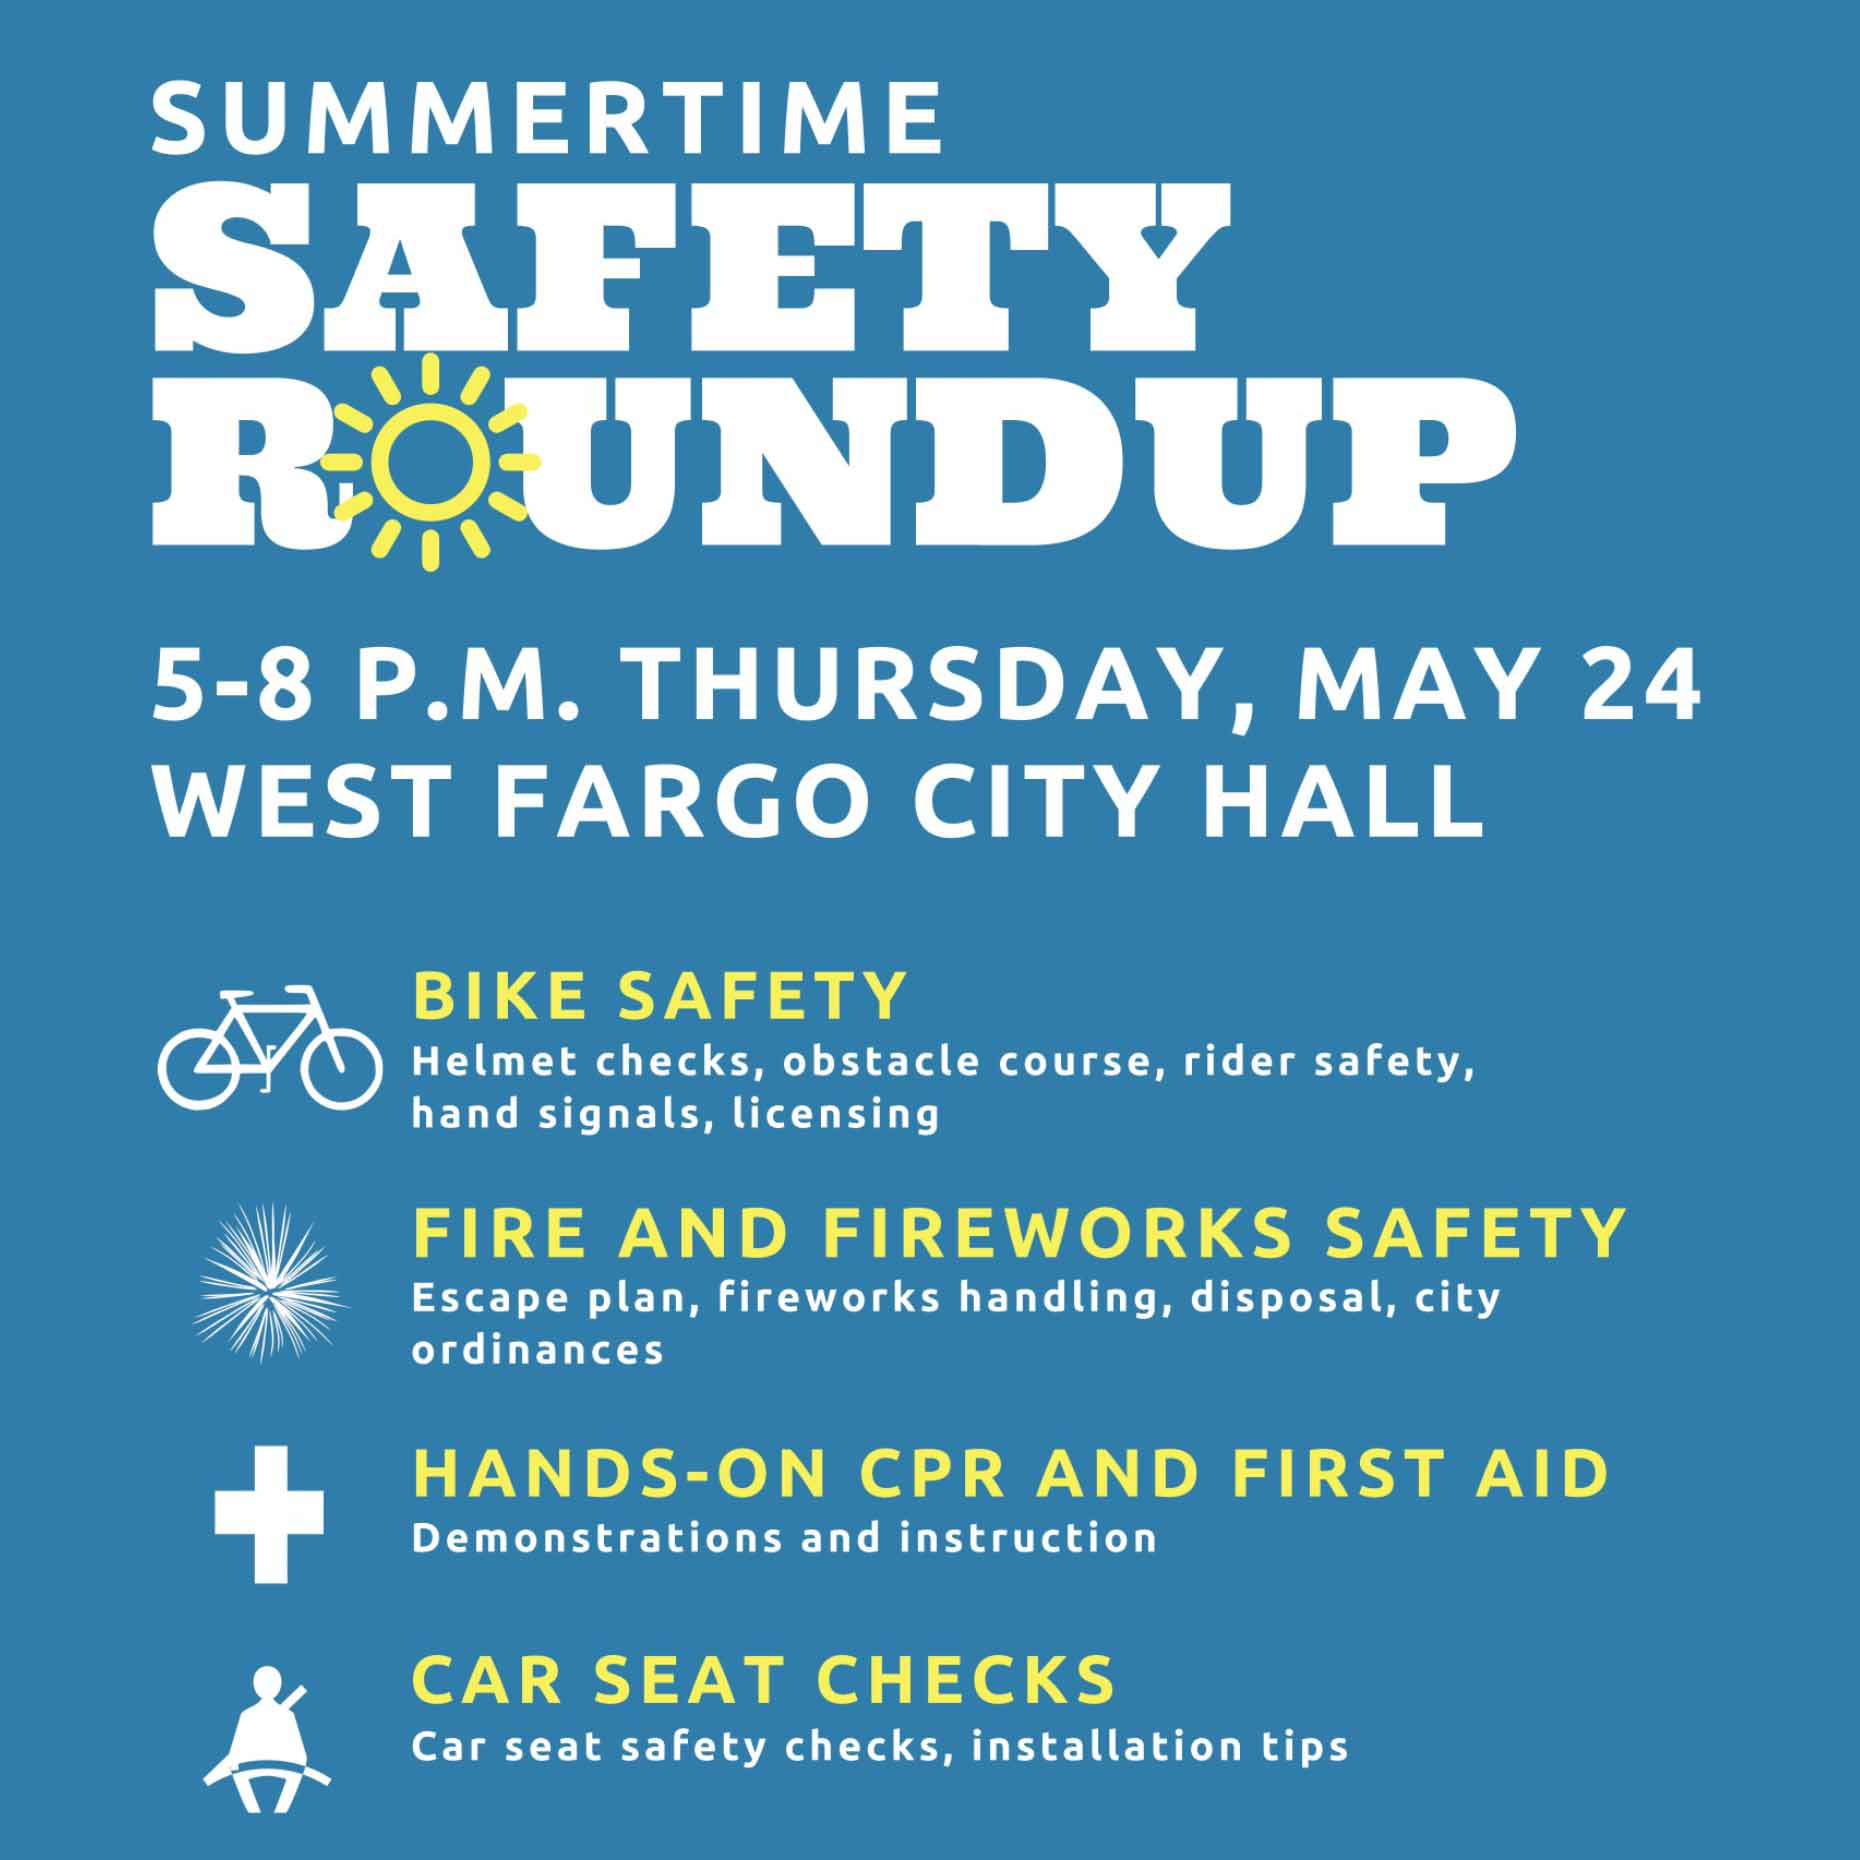 Summertime Safety Roundup Poster